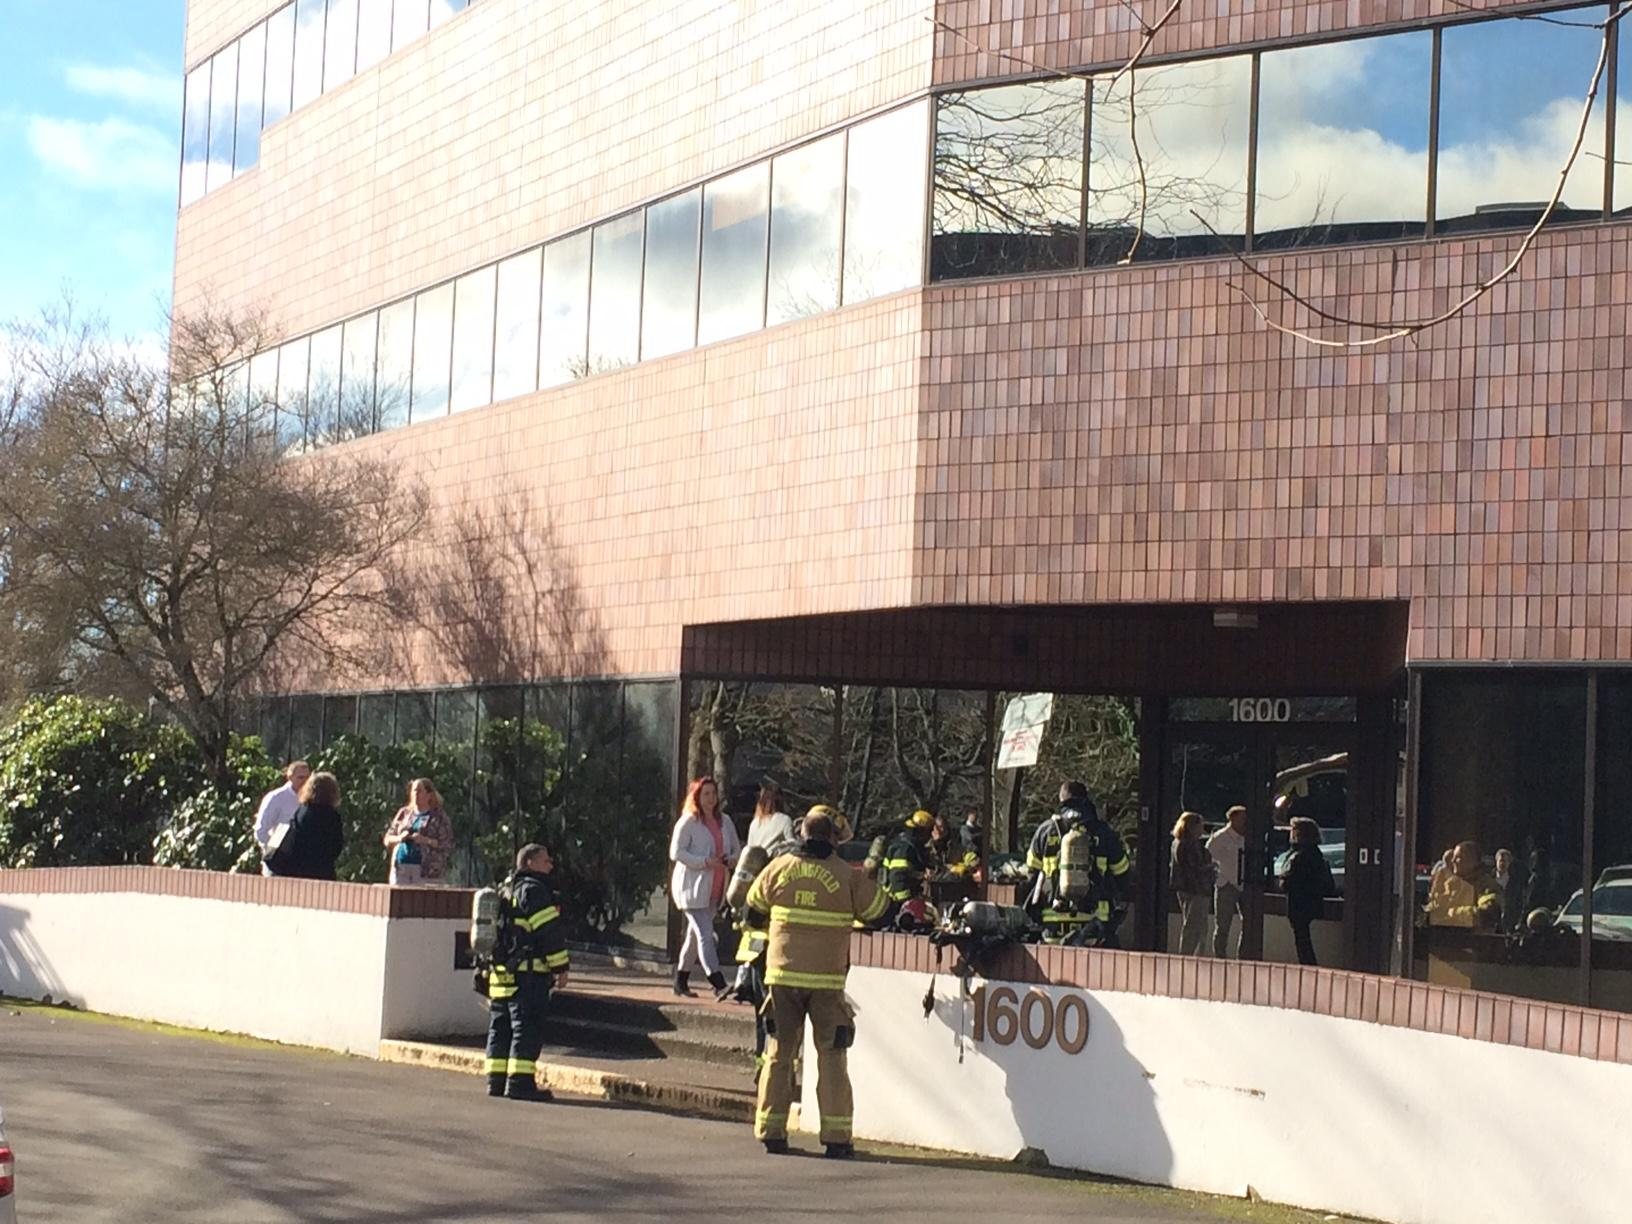 People evacuated buildings near the Valley River Center mall Monday after reports of possible gas leaks. (SBG)